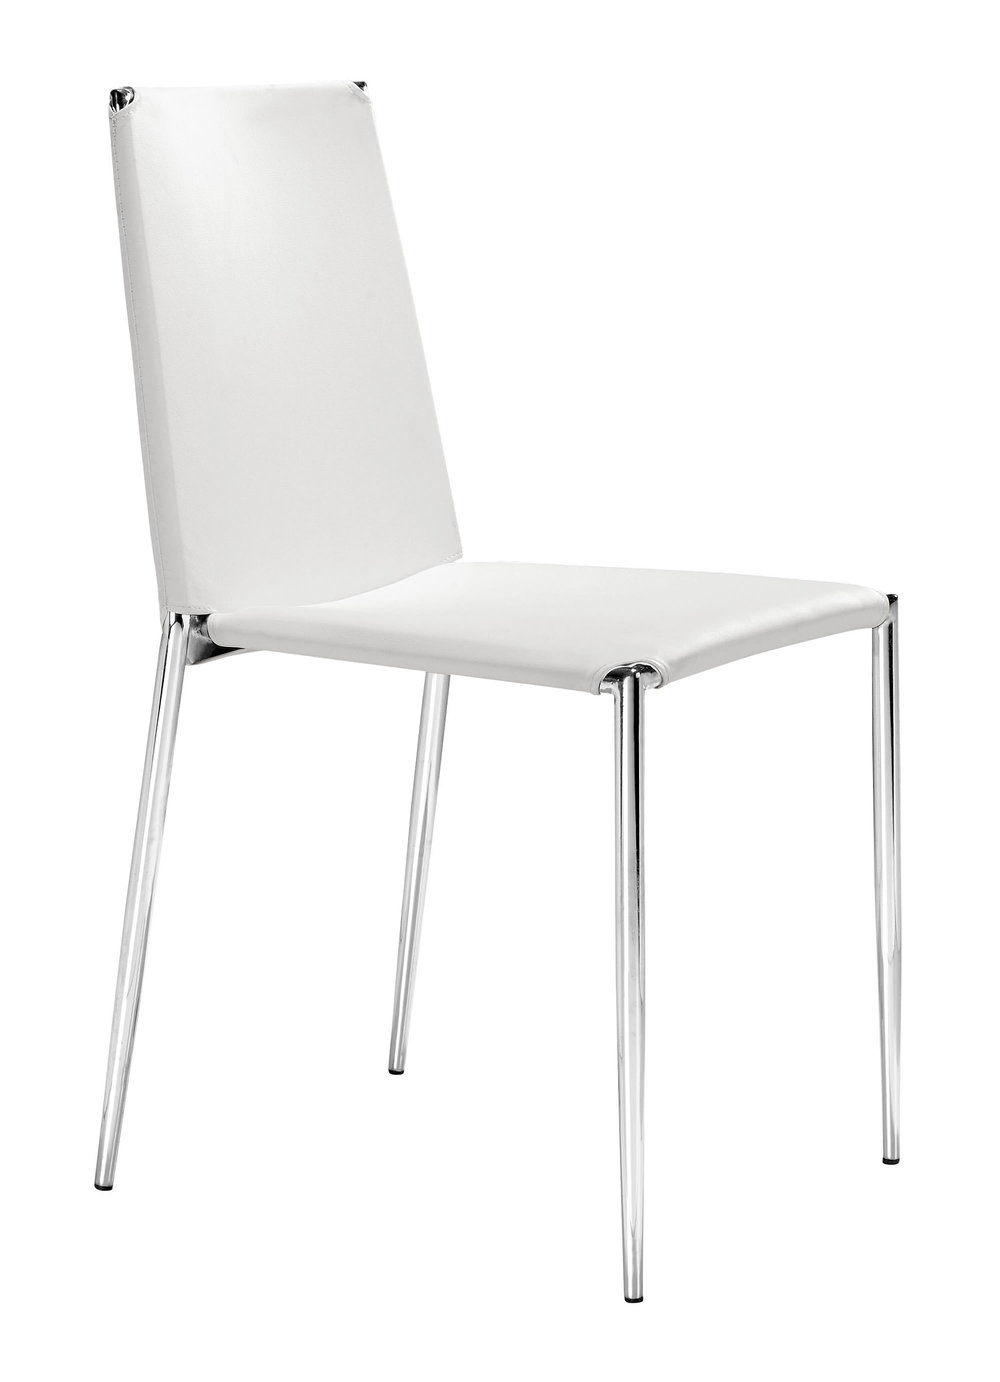 ZUO MODERN CONTEMPORARY, INC - Alex Dining Chair - Set of 4 - White